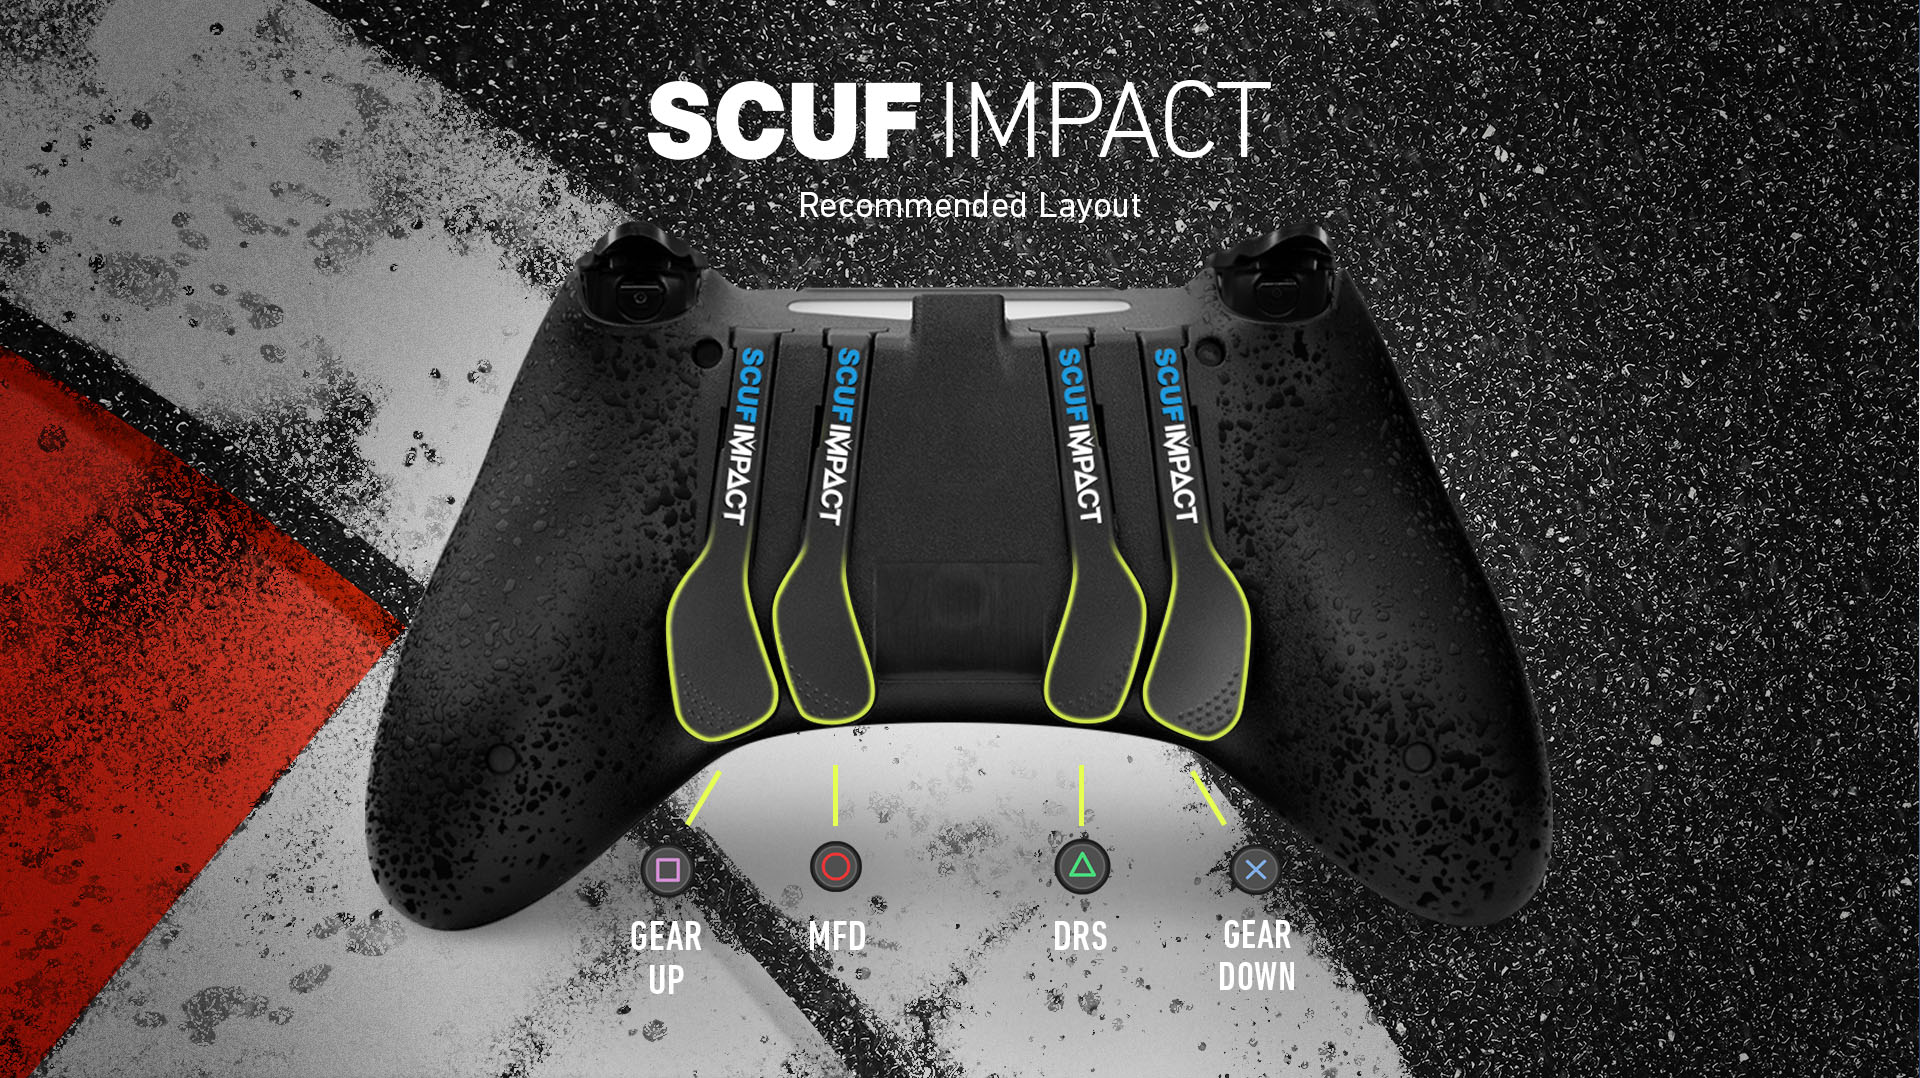 SCUF IMPACT F1 2019 PS4 Controller Layout